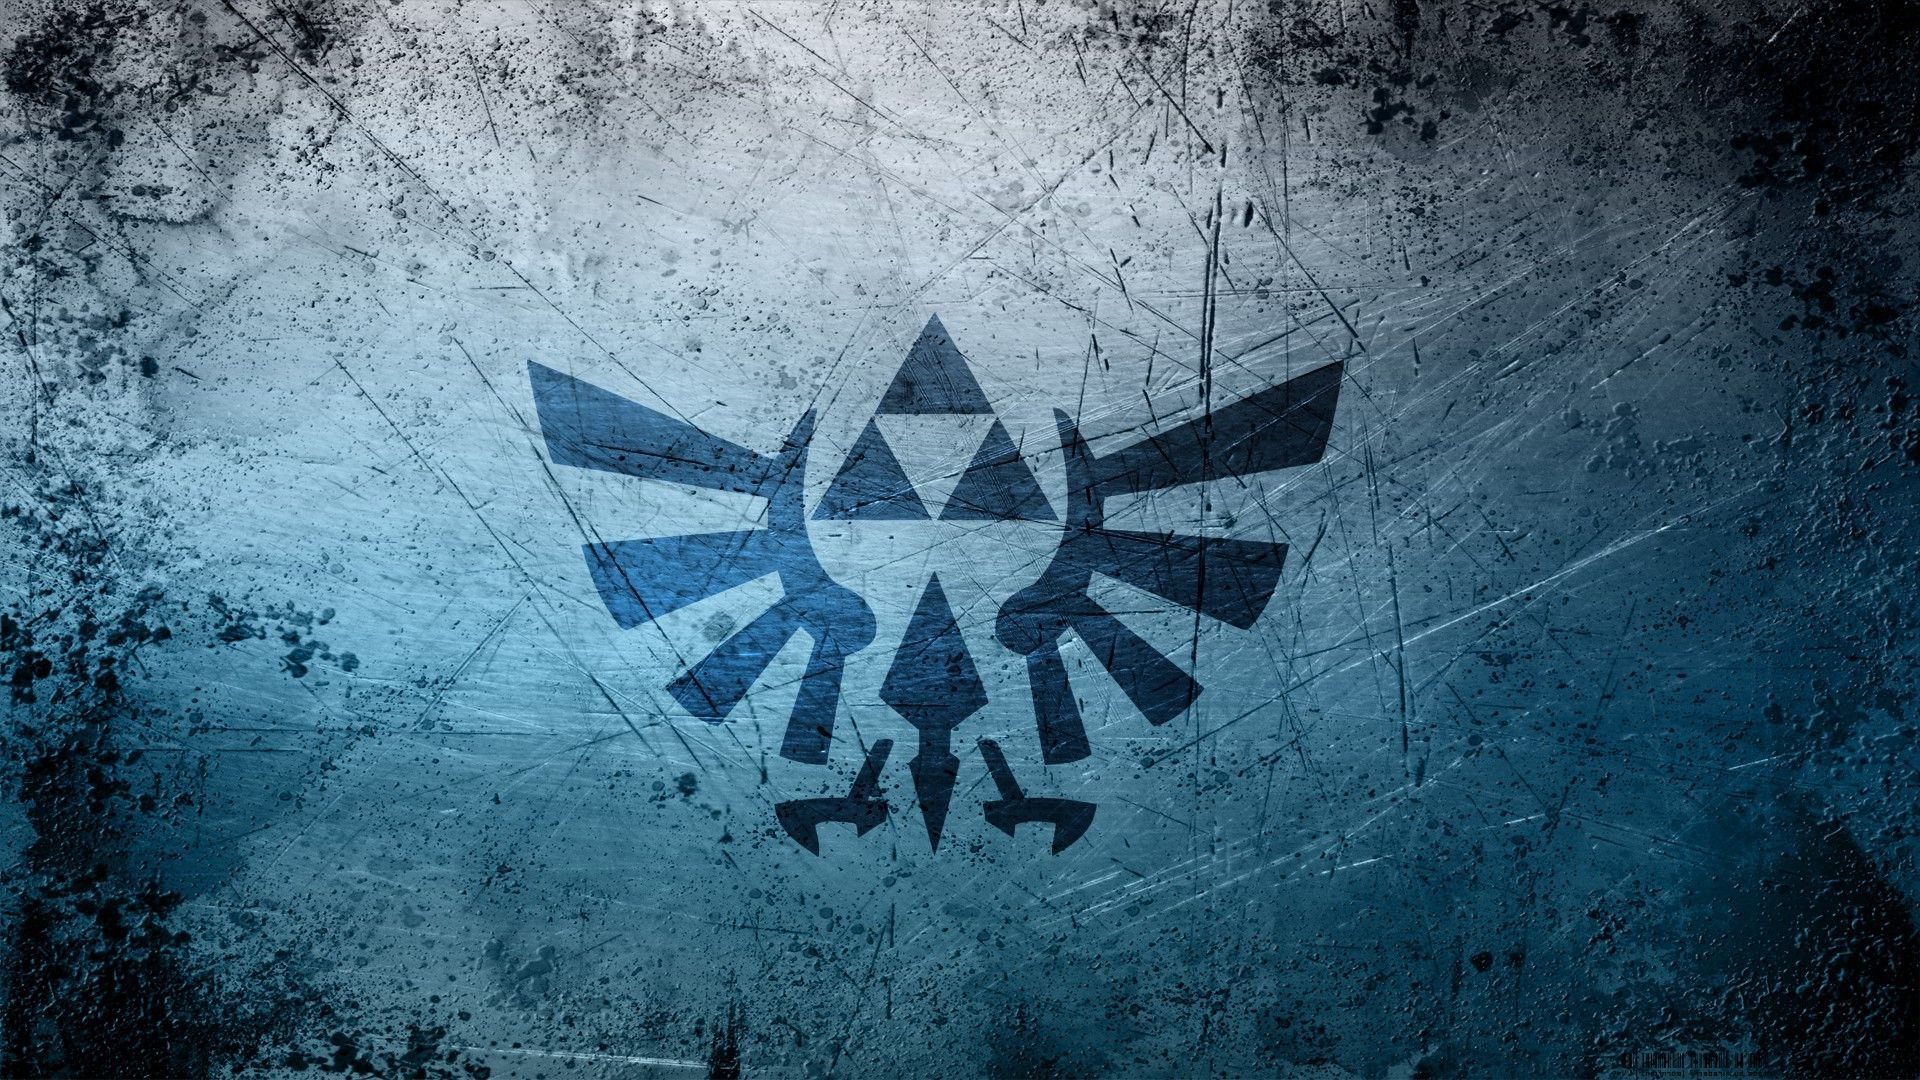 Wallpaper Zelda